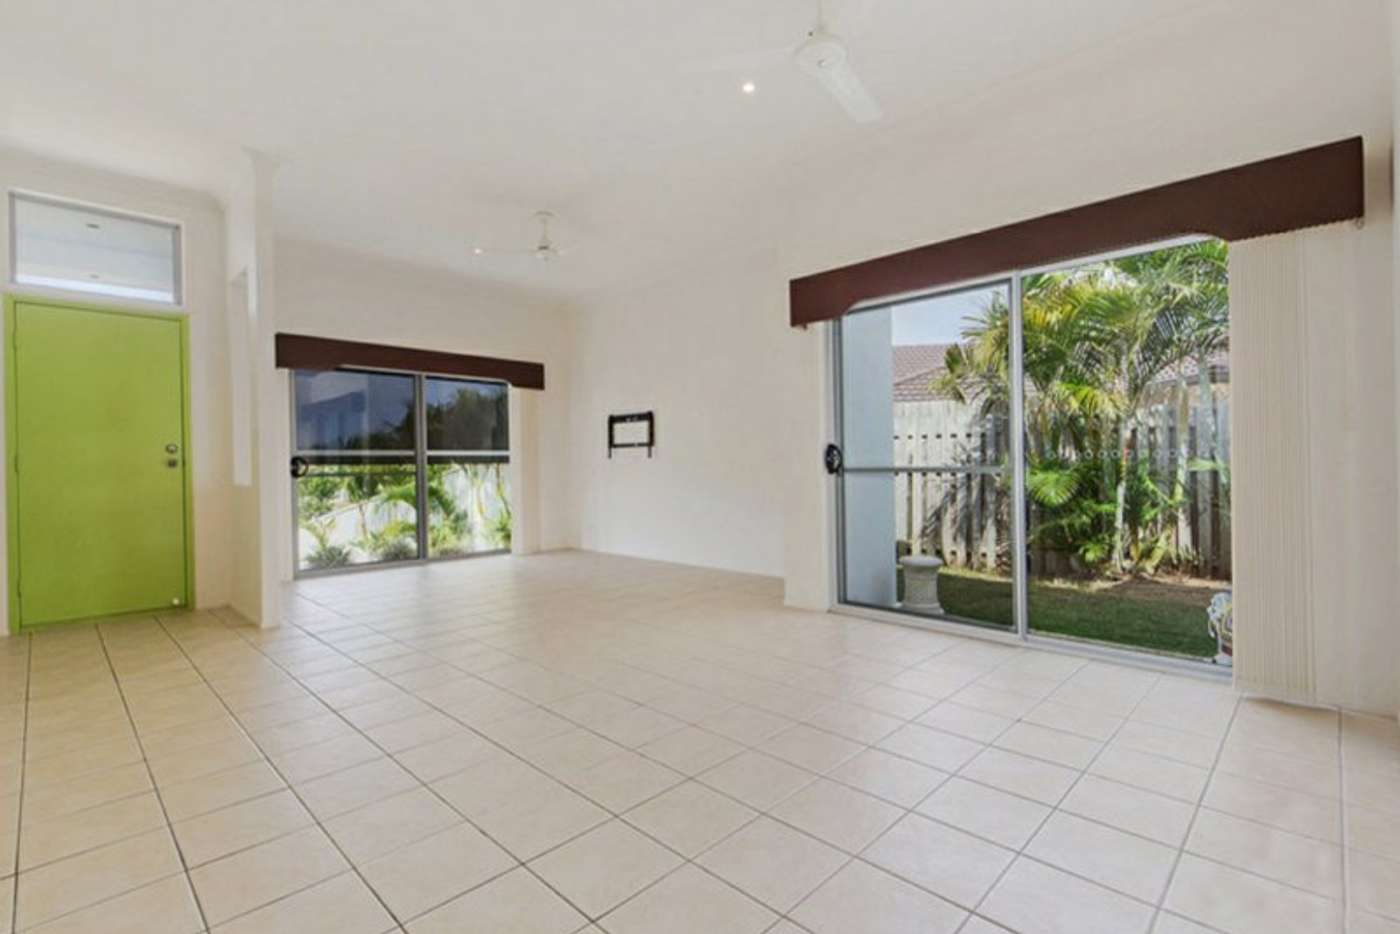 Sixth view of Homely house listing, 54 Merrilaine Crescent, Merrimac QLD 4226